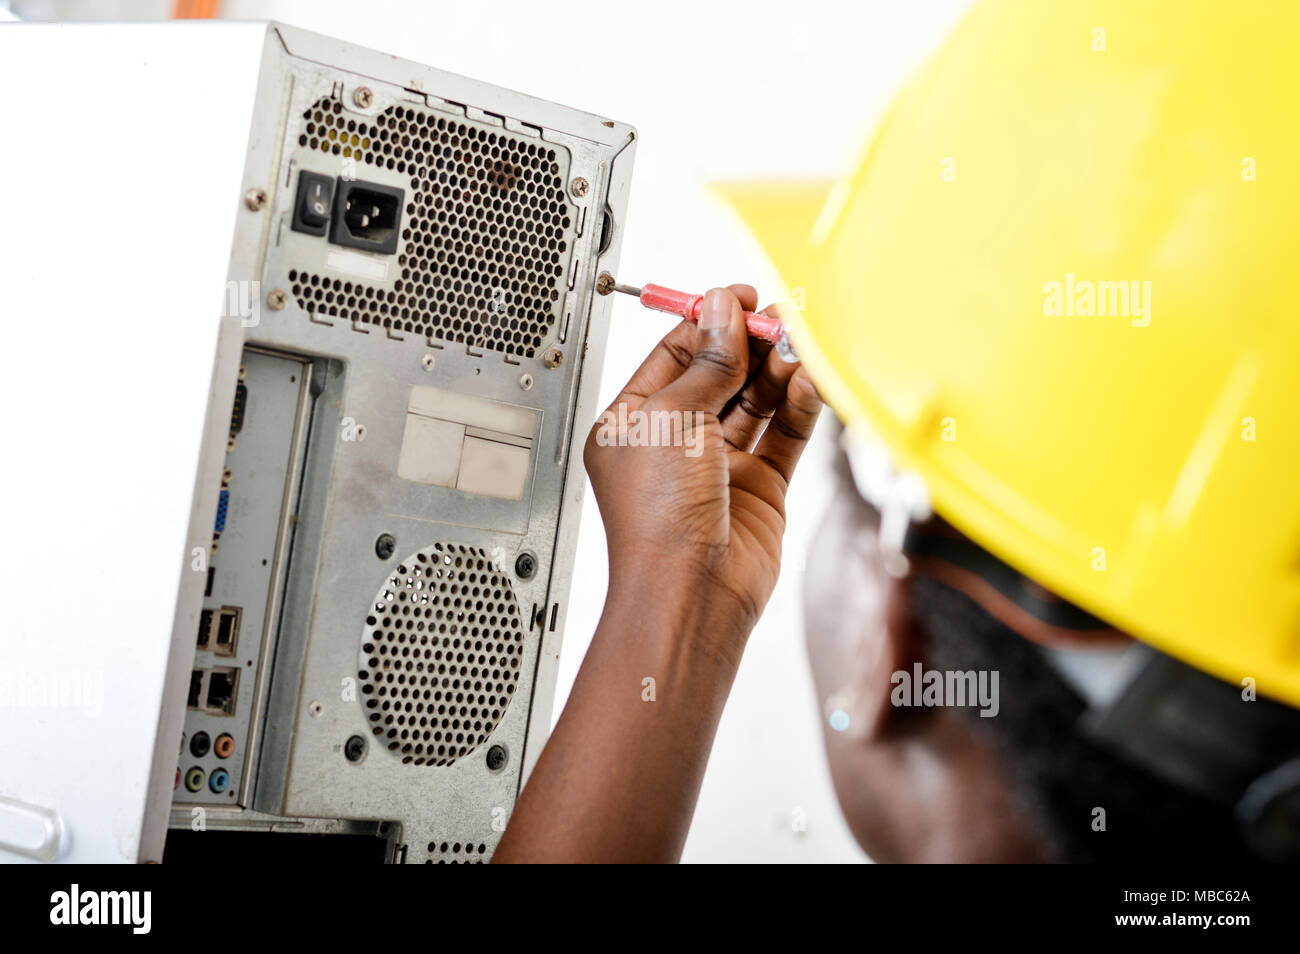 Close-up of a worker's head opening a computer with a vice turn. - Stock Image